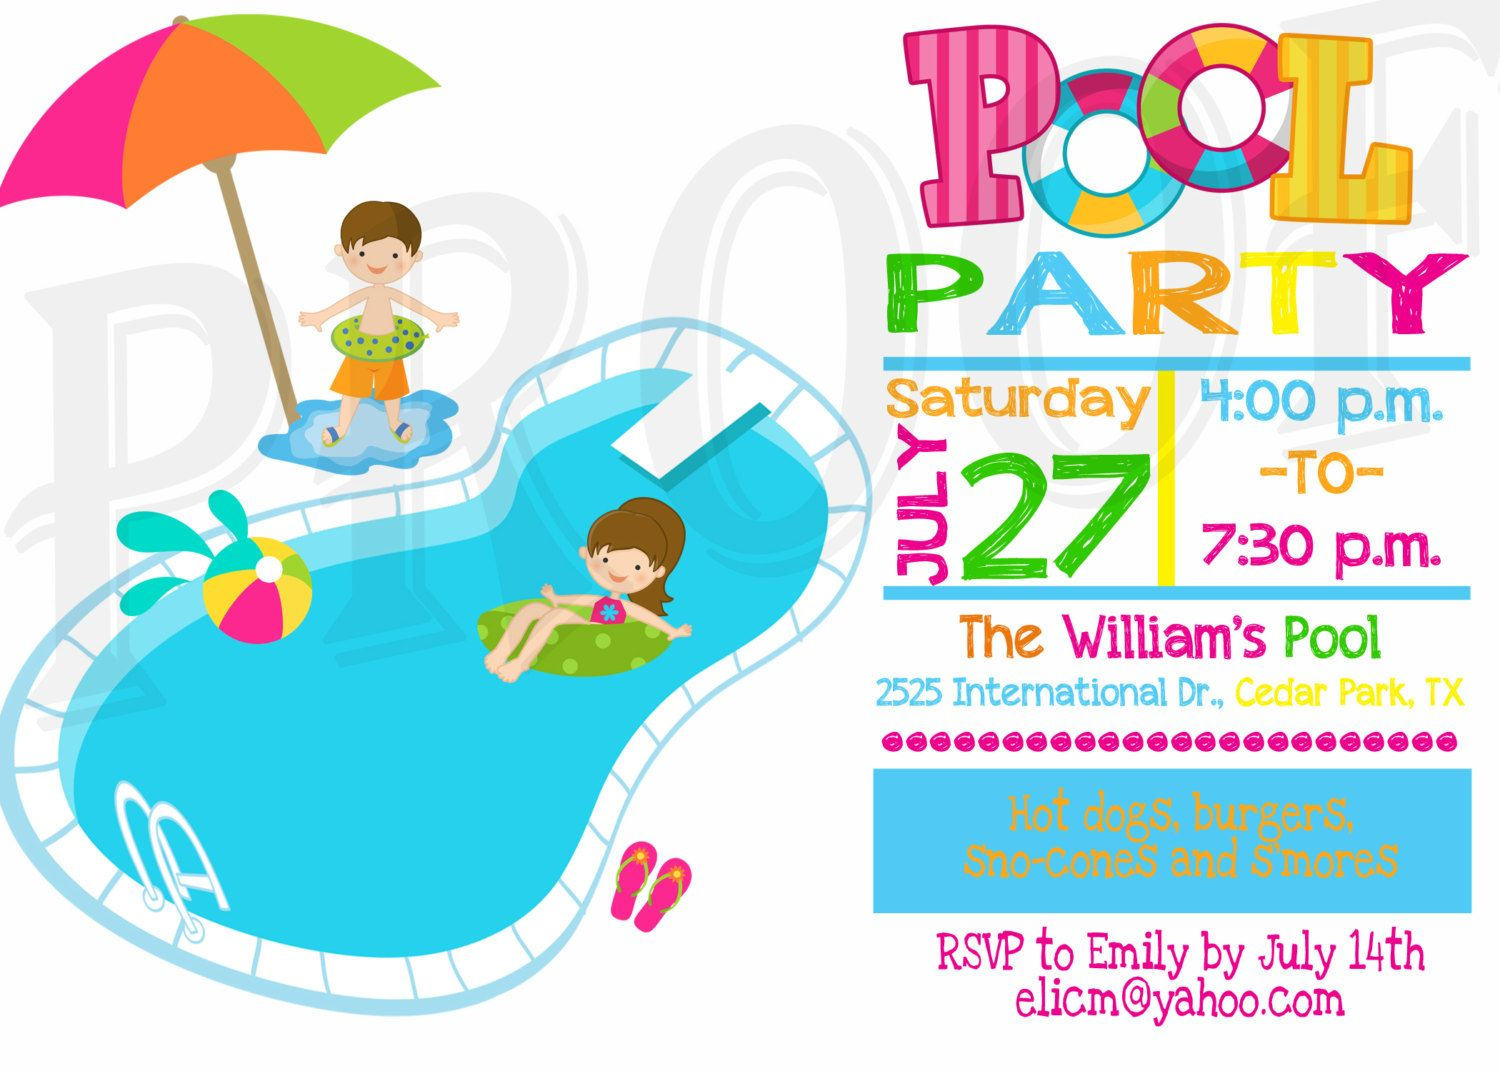 Pool Party Invitations For Boys | Party | Pinterest | Pool party ...